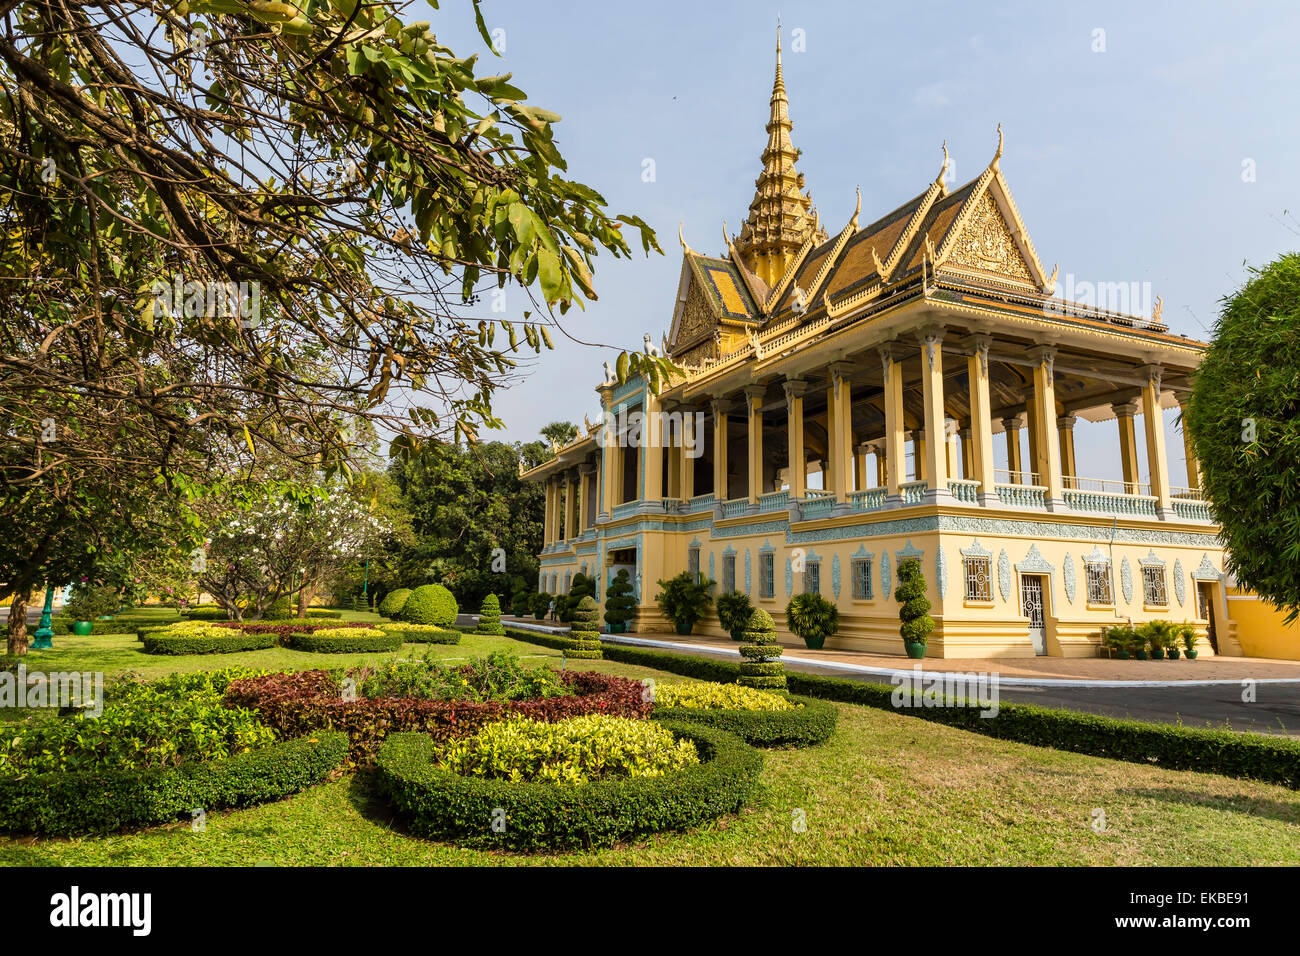 The Moonlight Pavilion, Royal Palace, in the capital city of Phnom Penh, Cambodia, Indochina, Southeast Asia, Asia - Stock Image